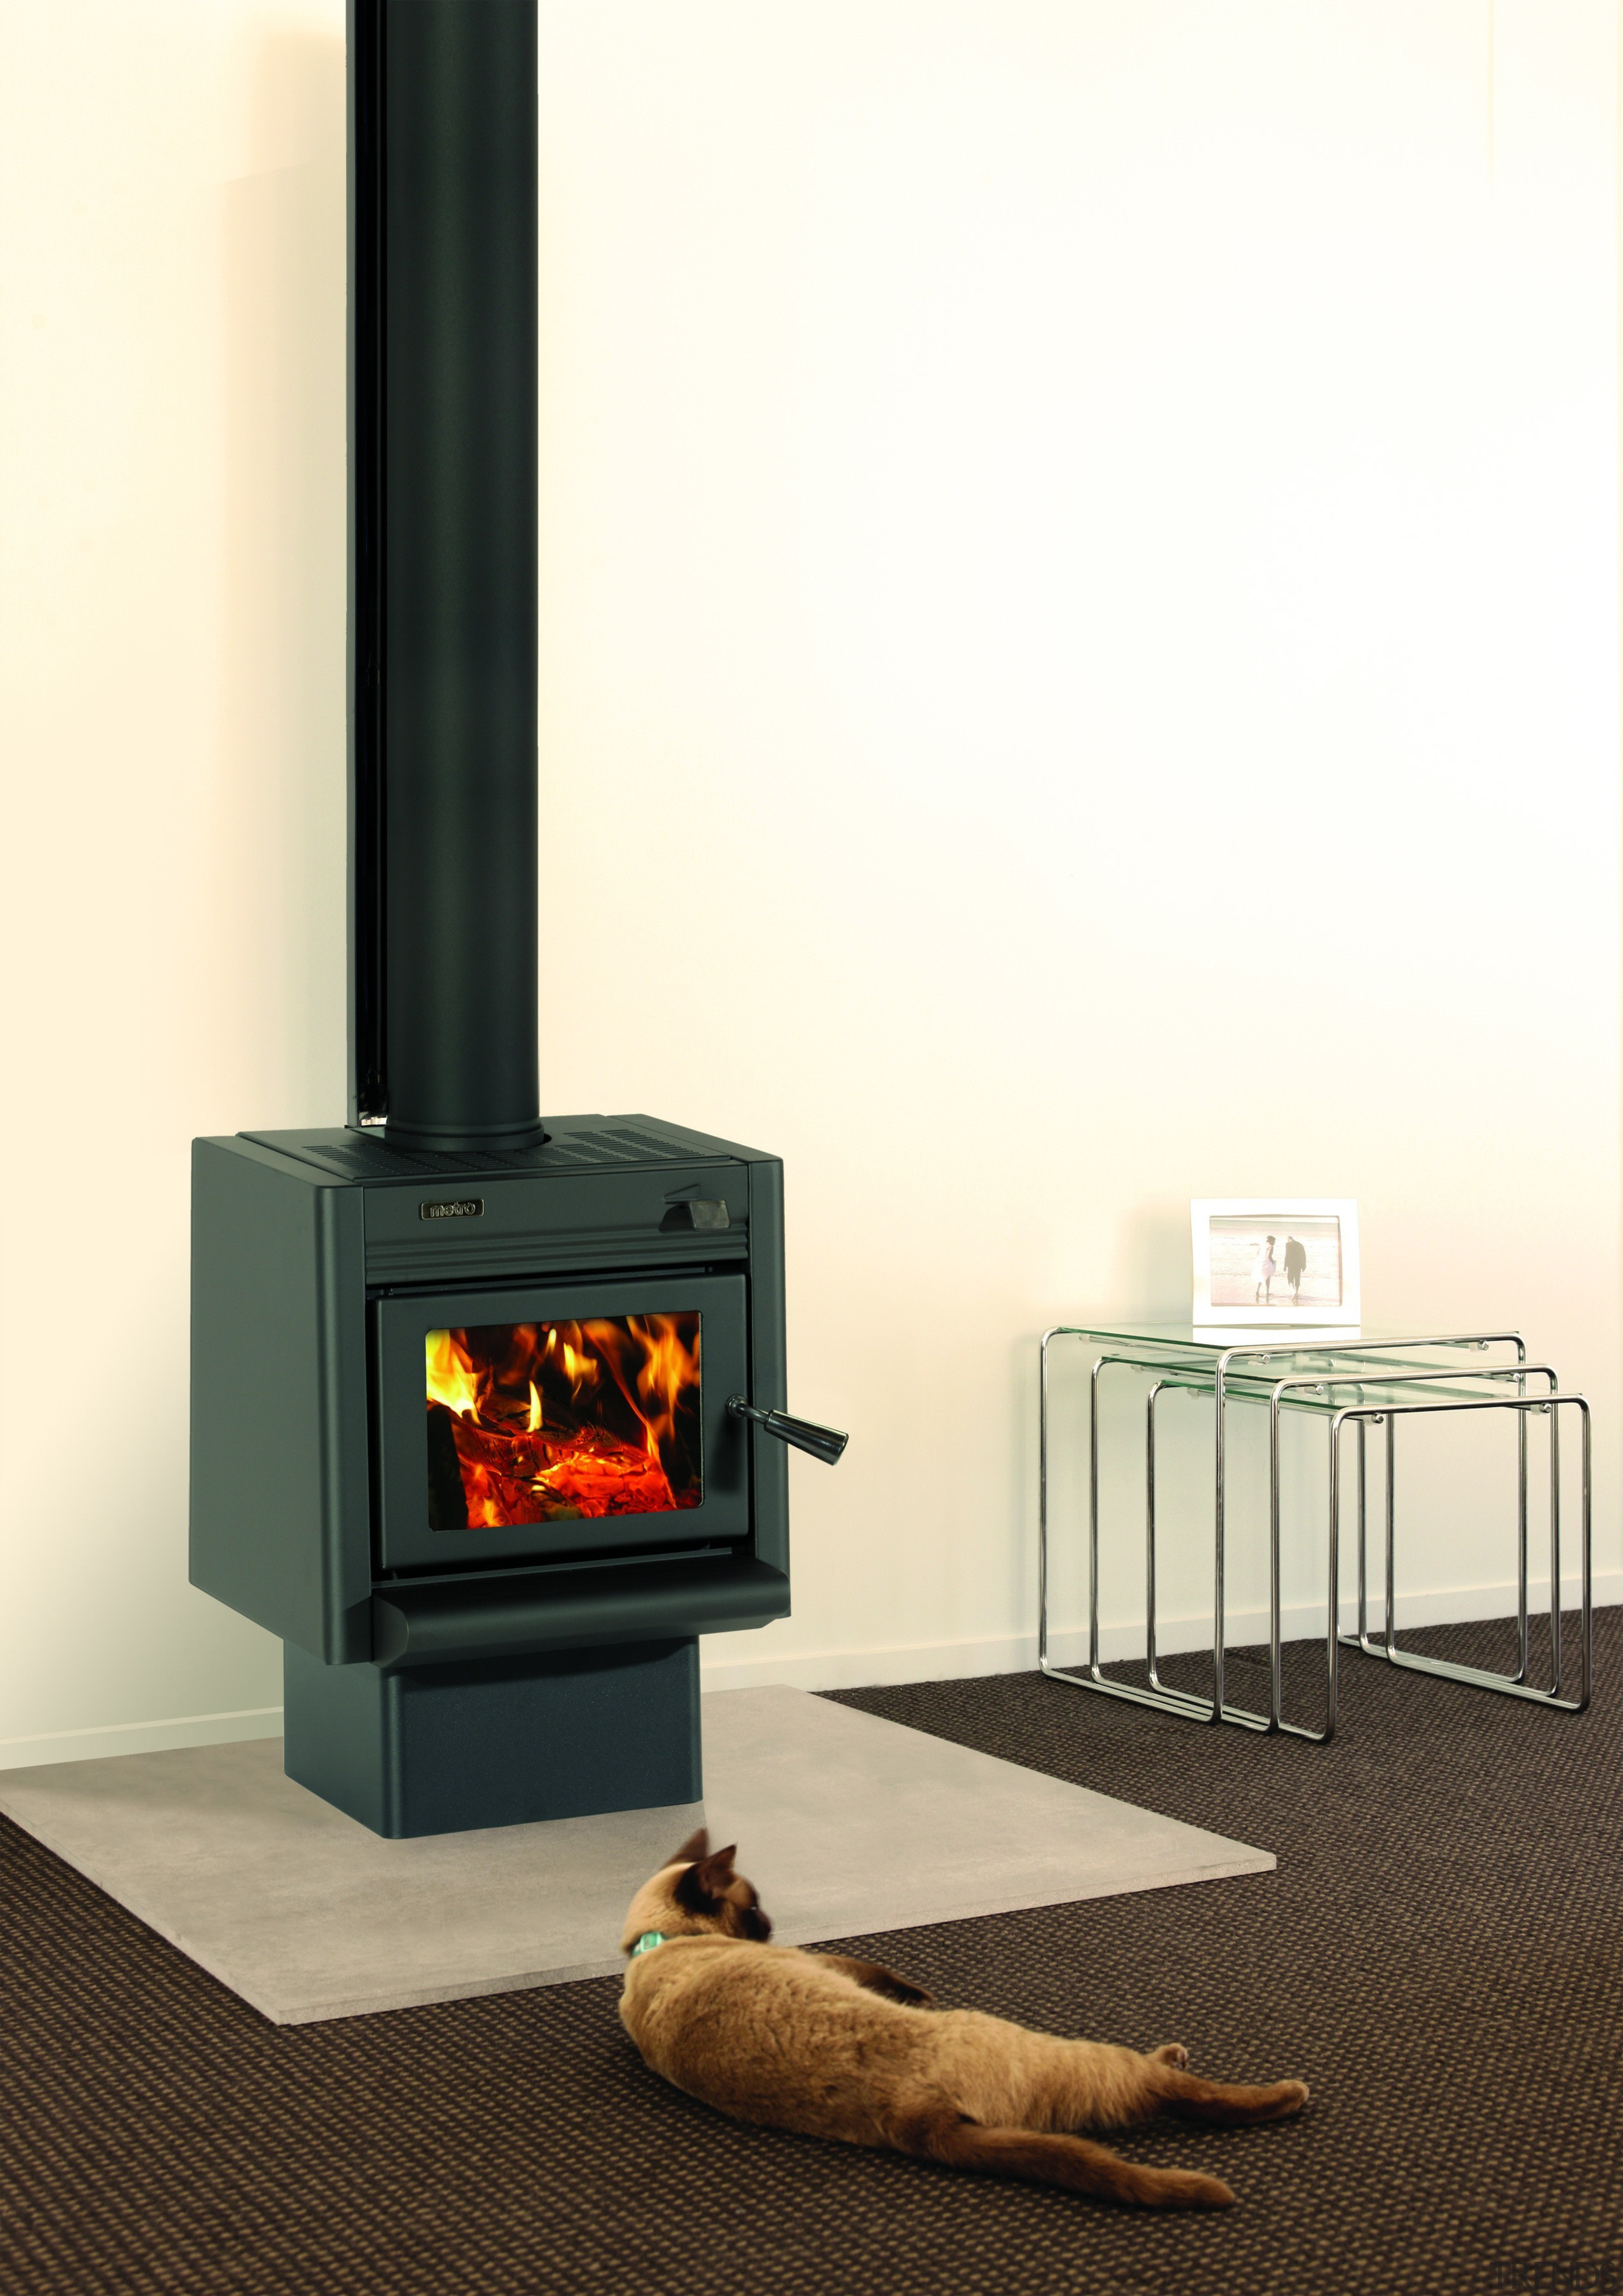 Metro Fires Tiny Ped 11kW Wood Fire - hearth, heat, home appliance, product, wood burning stove, yellow, white, black